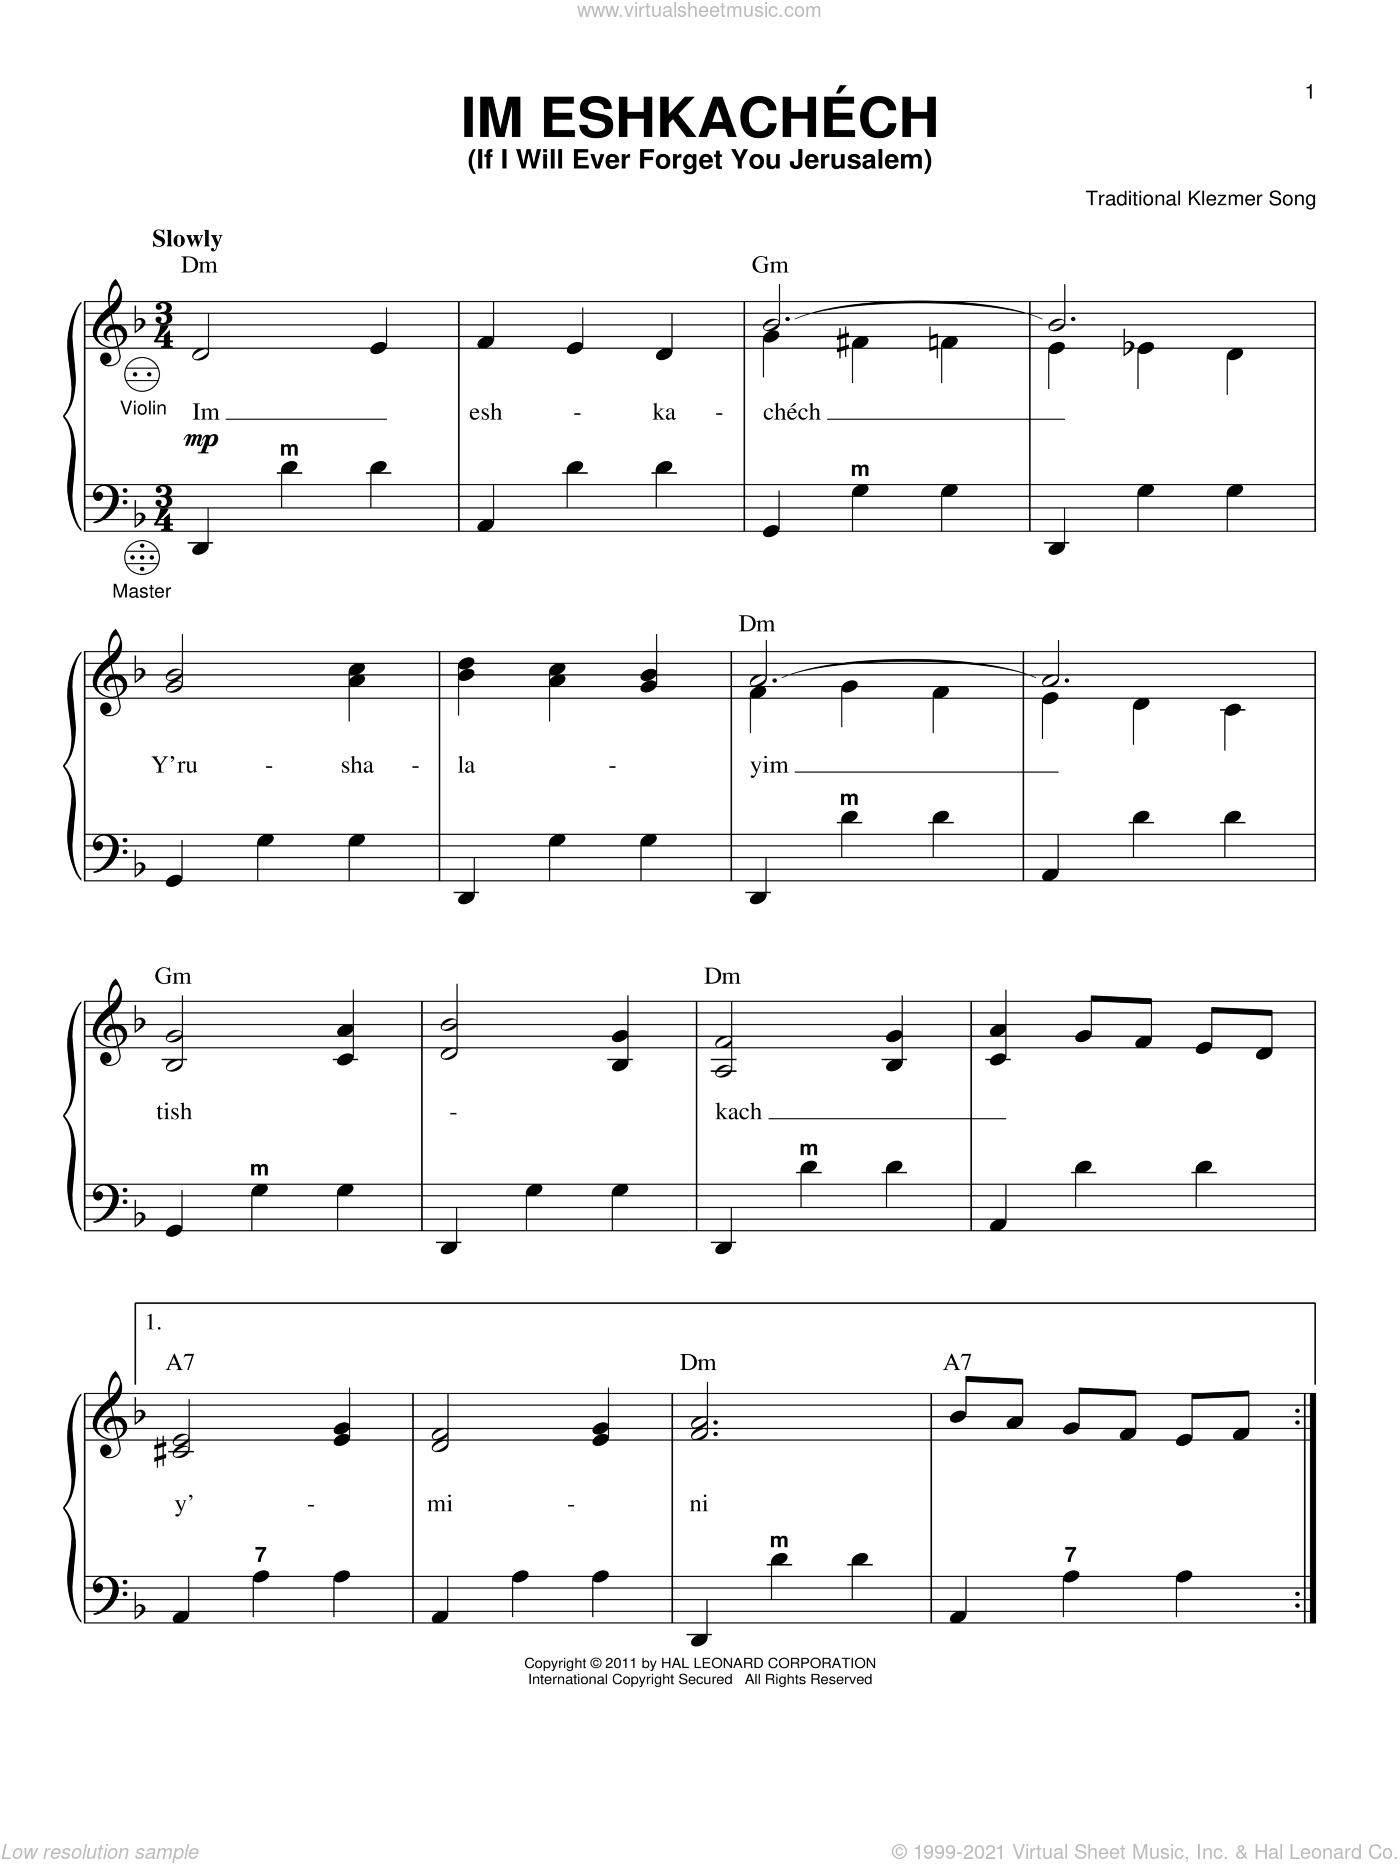 Im Eshkachech (If I Will Ever Forget You Jerusalem) sheet music for accordion by Traditional Klezmer Song, intermediate skill level